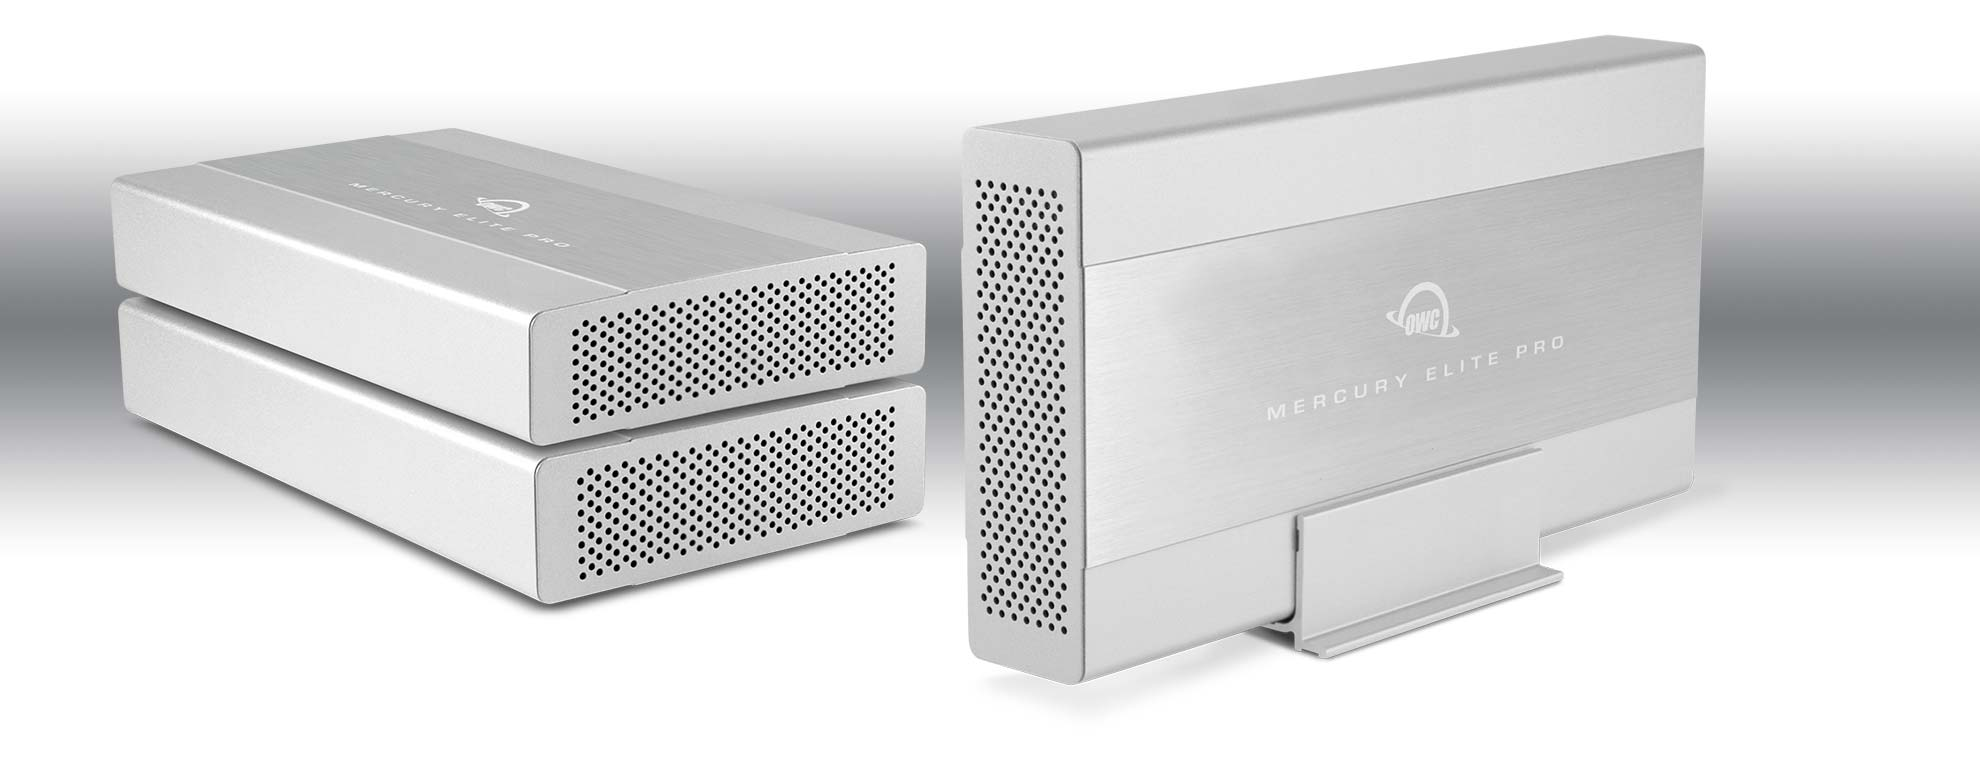 Mercury Elite Pro USB 3.0 External Hard Drive